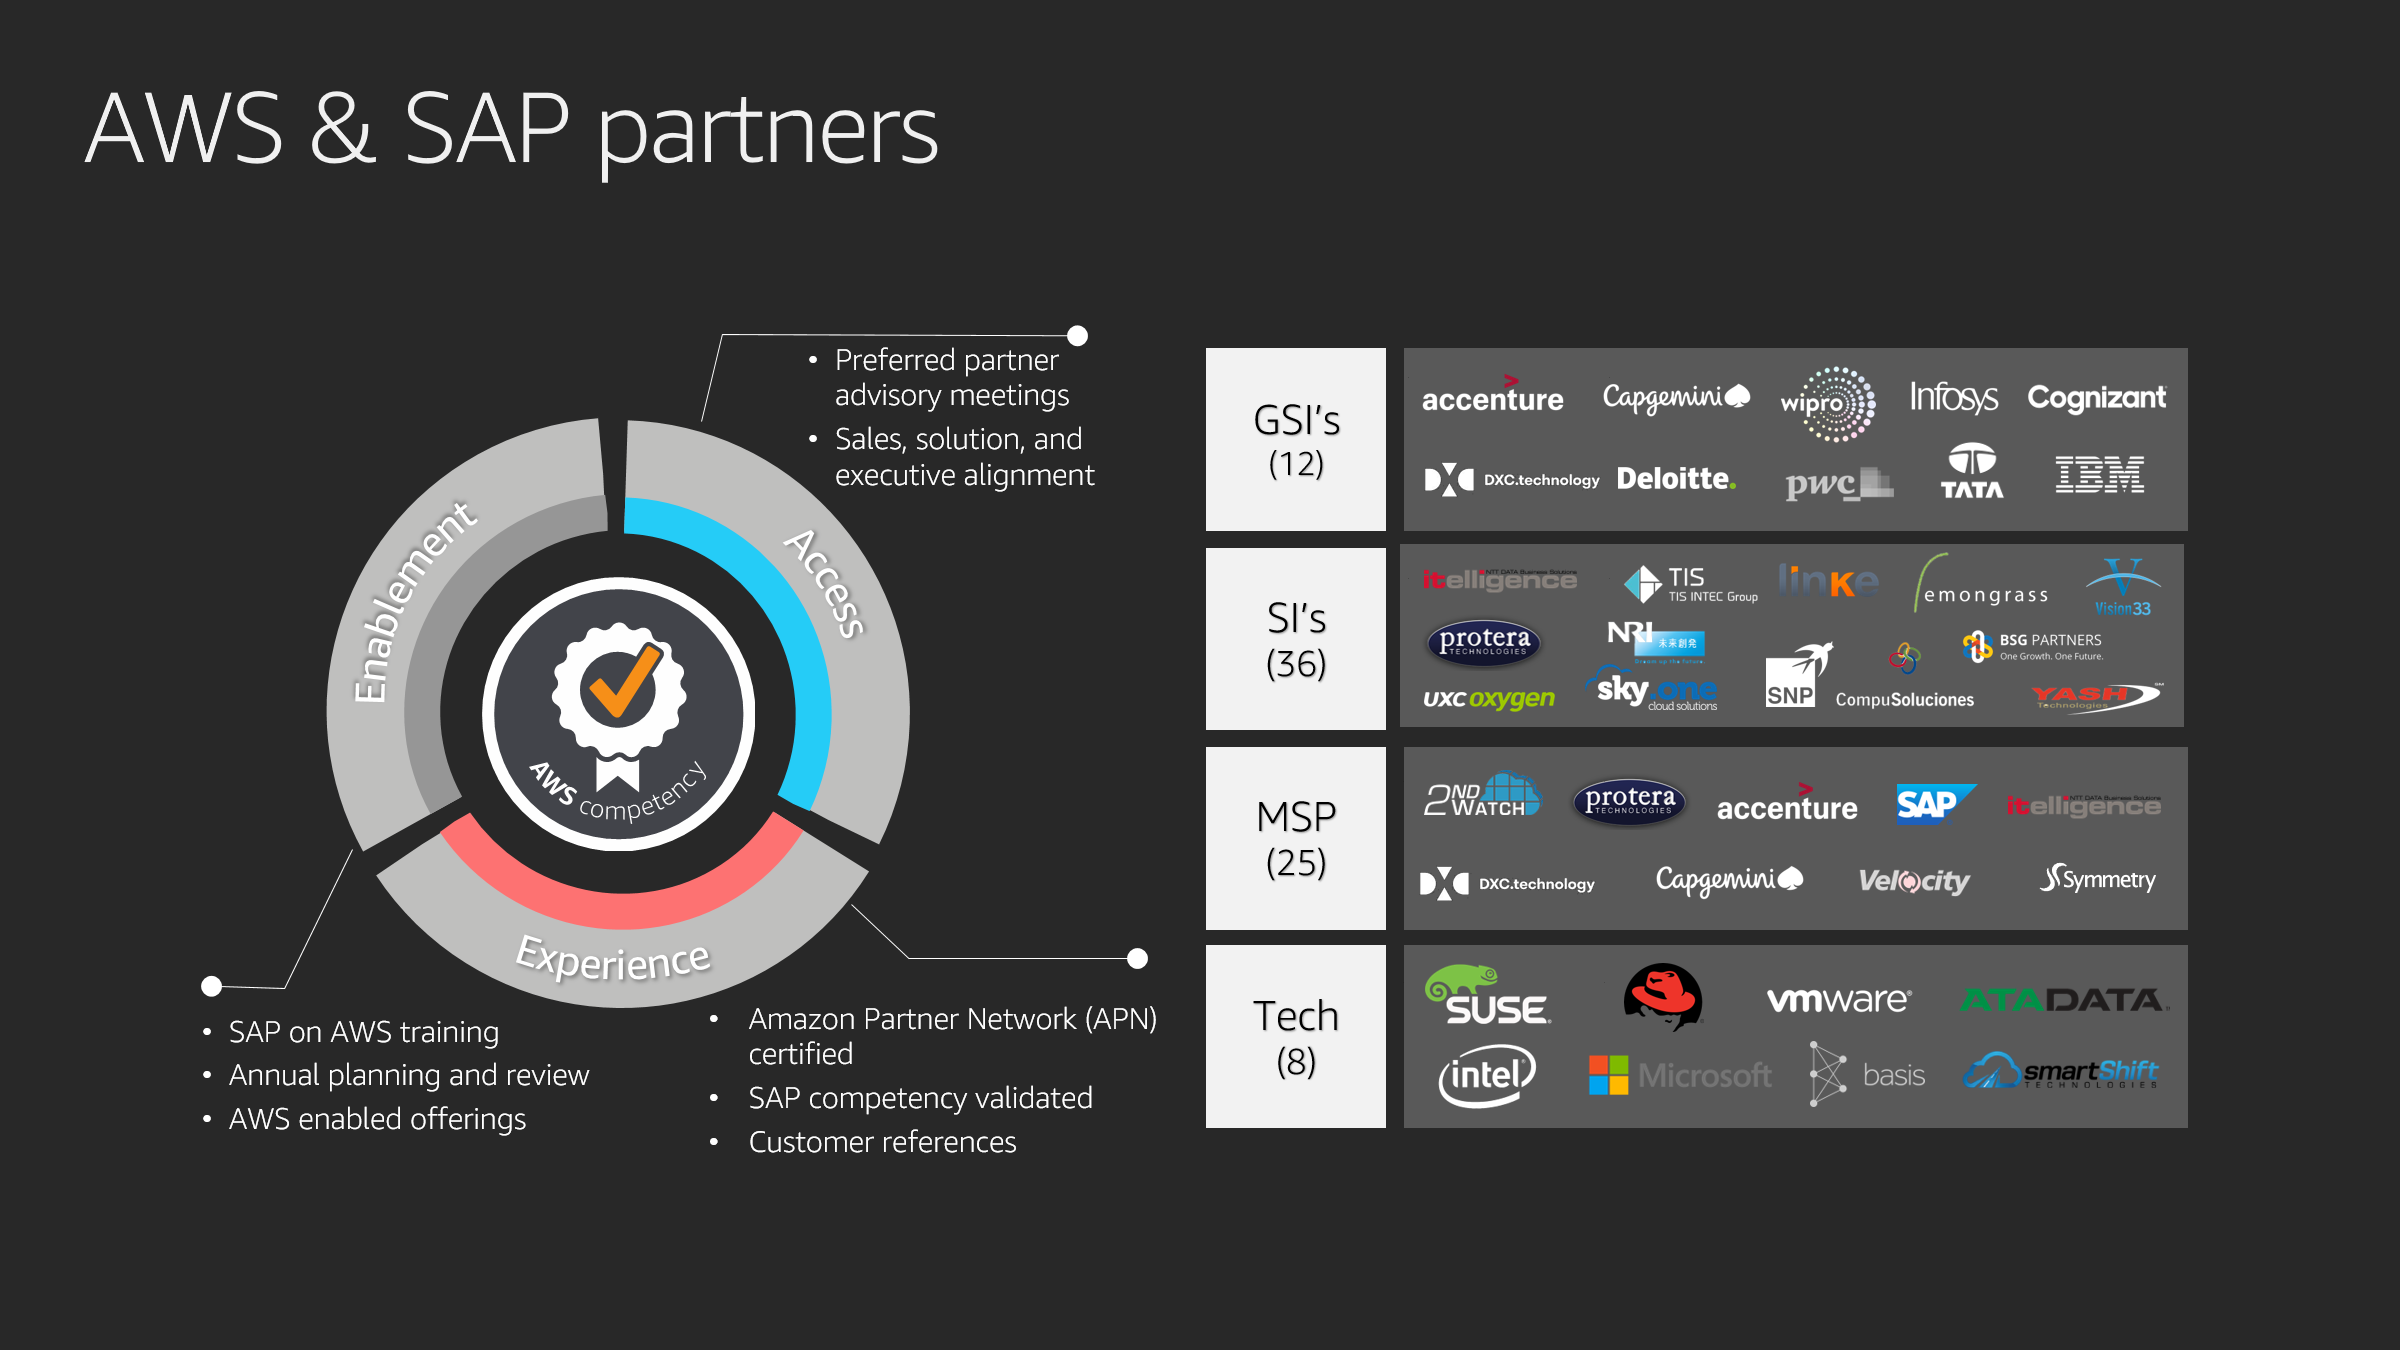 Image that shows AWS & SAP partners including GSIs, SIs, MSPs, and Tech Partners.